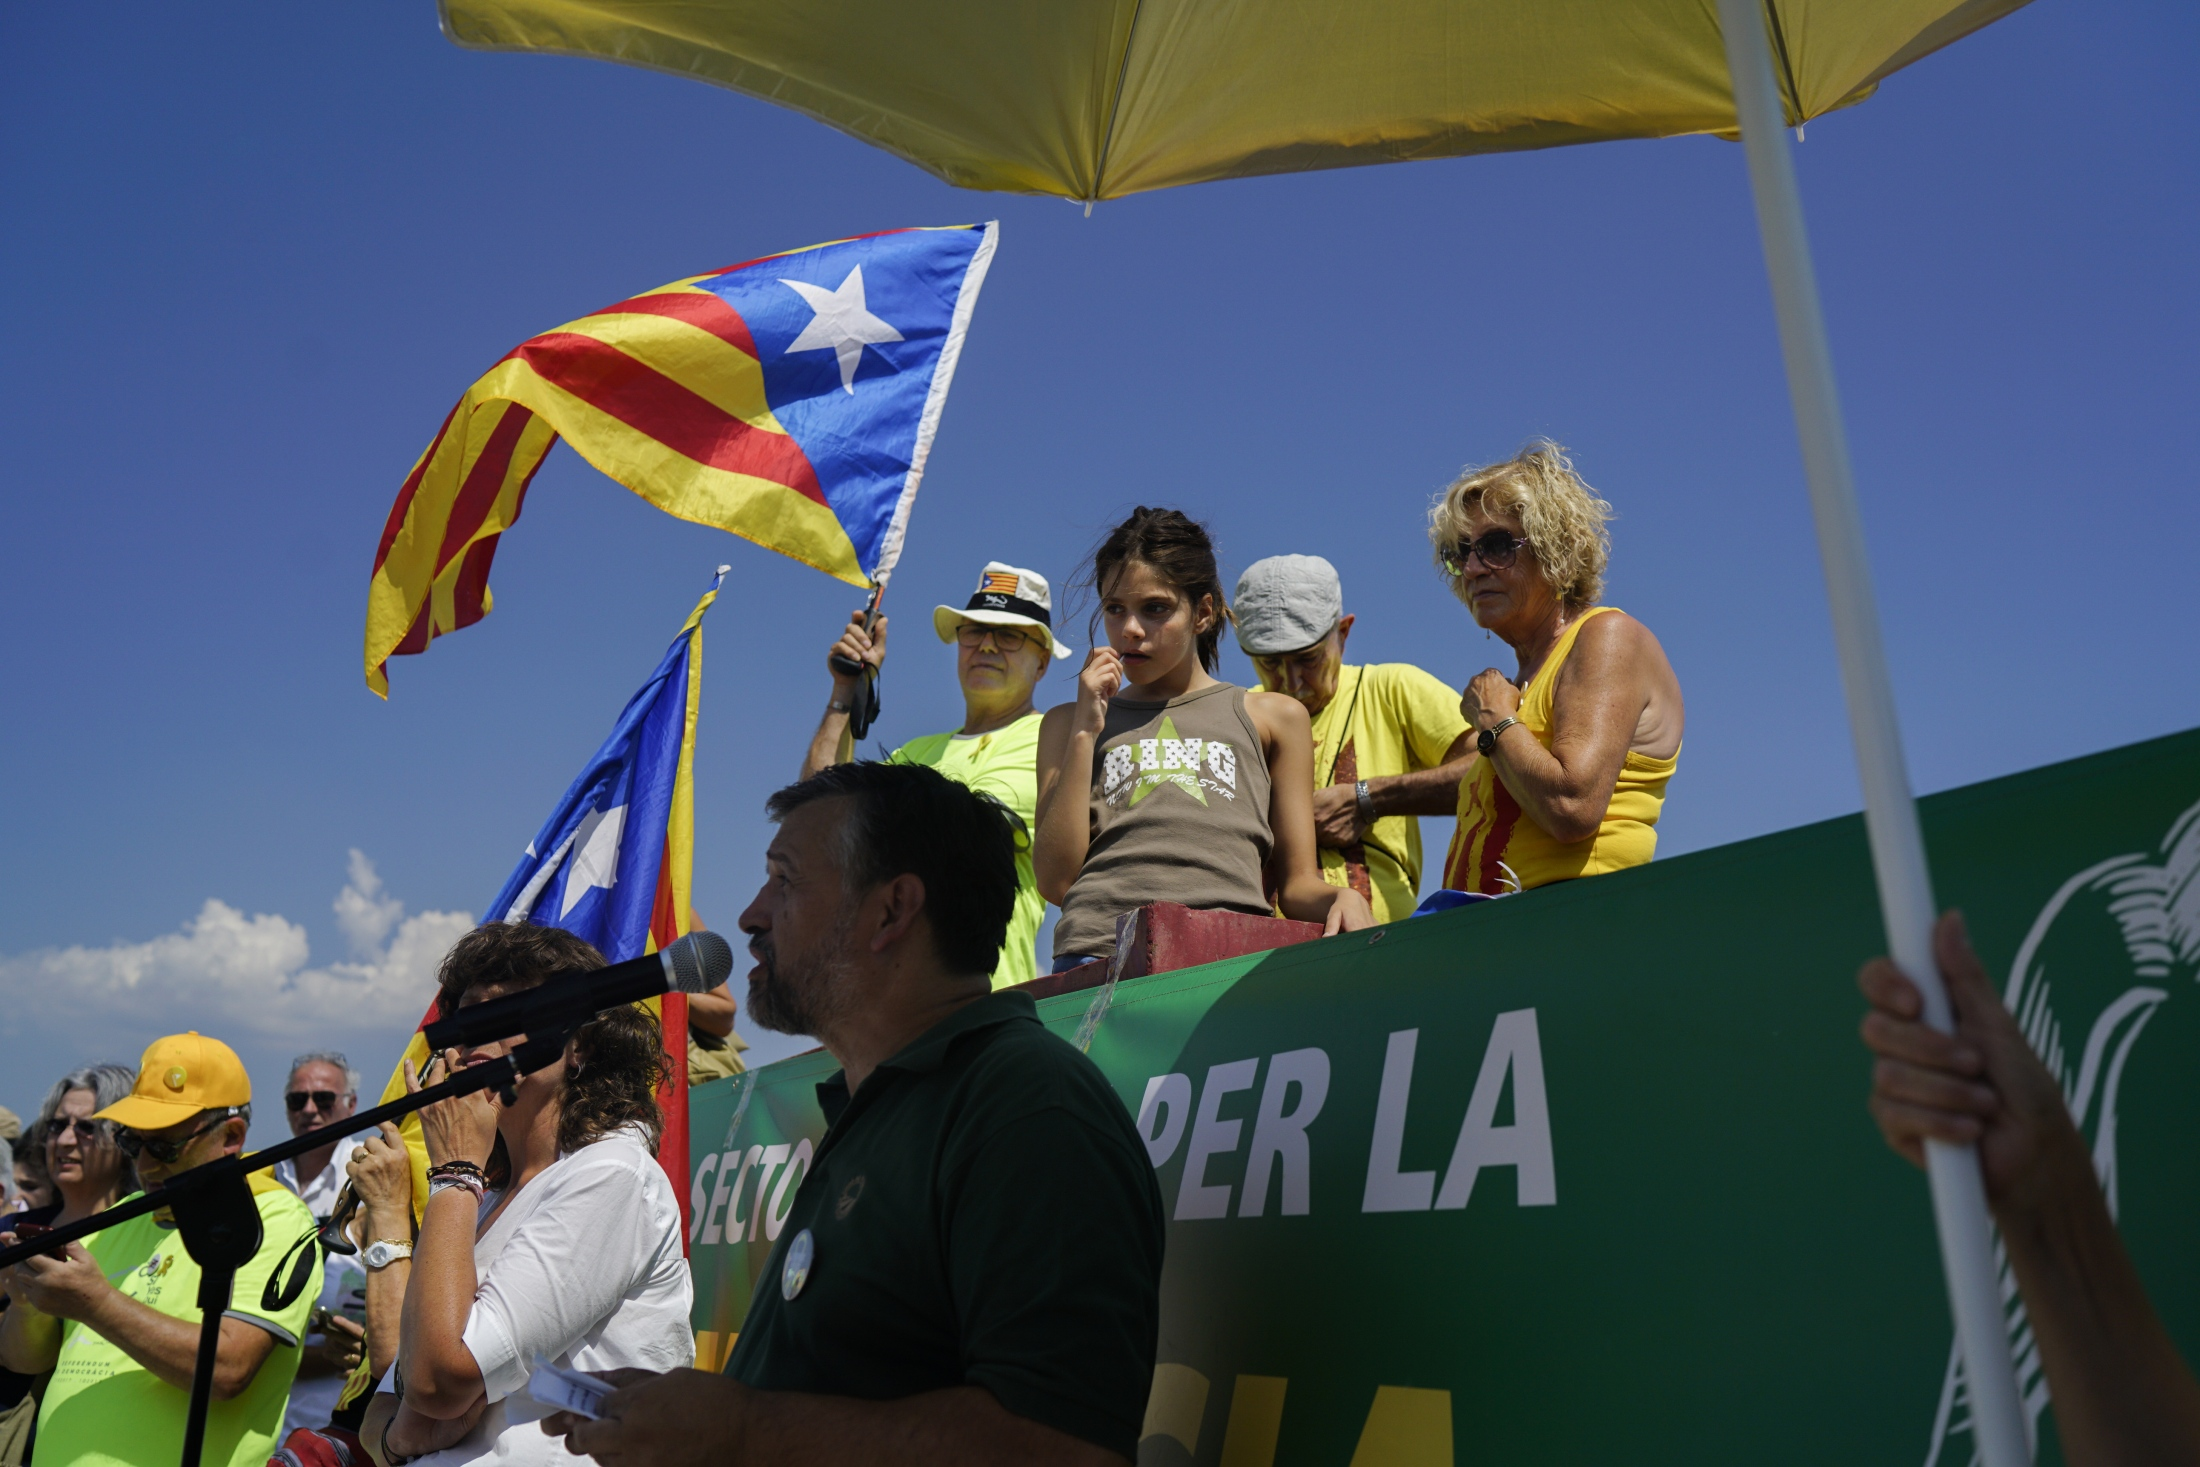 Current head of the Catalan Farmer's Union Joan Caball I Subirana speaks outside of the Puig de les Basses prison.